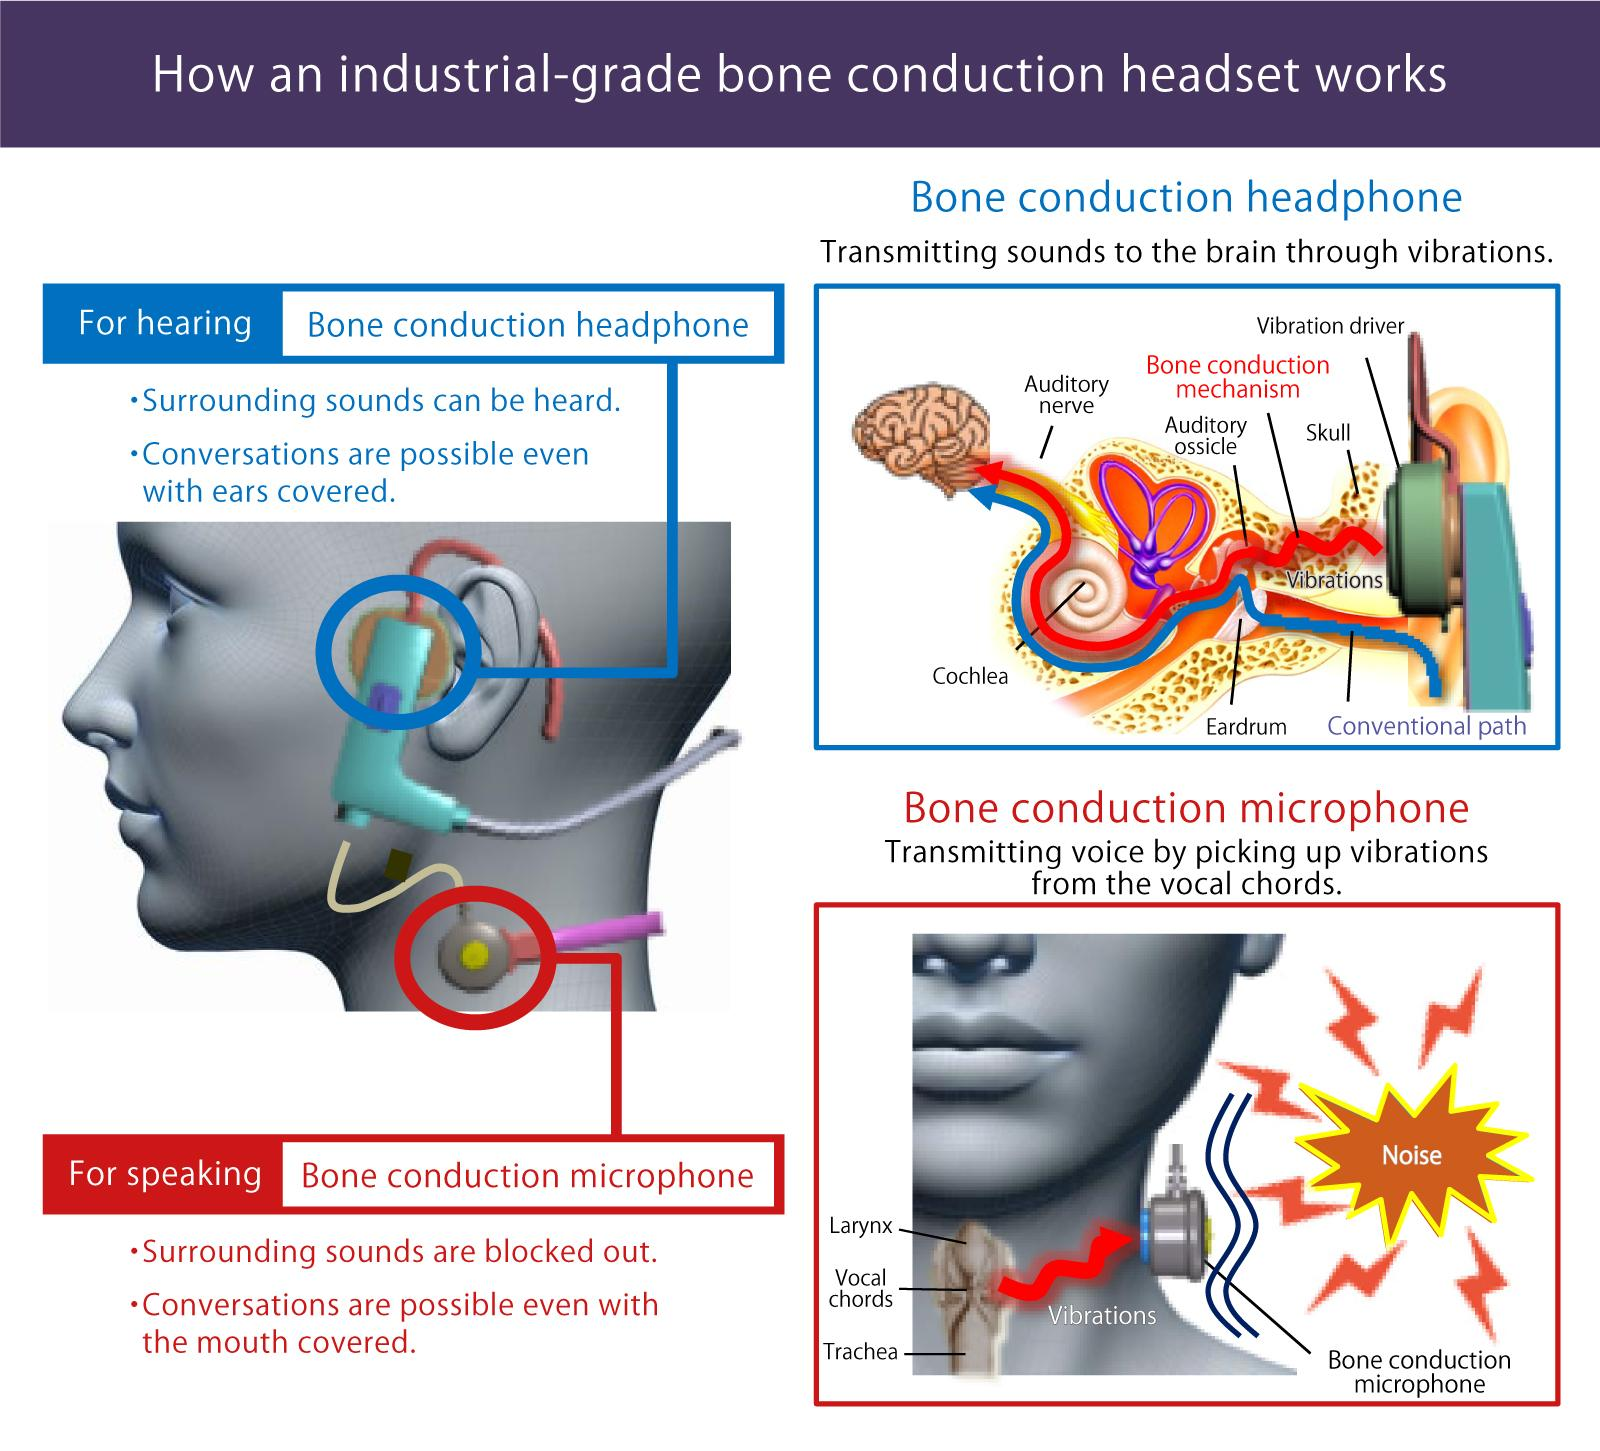 image: Because vibrations transmit sounds to the brain through the bones instead of the eardrum, this technology enables clear communications in loud workplaces without covering one's ears.